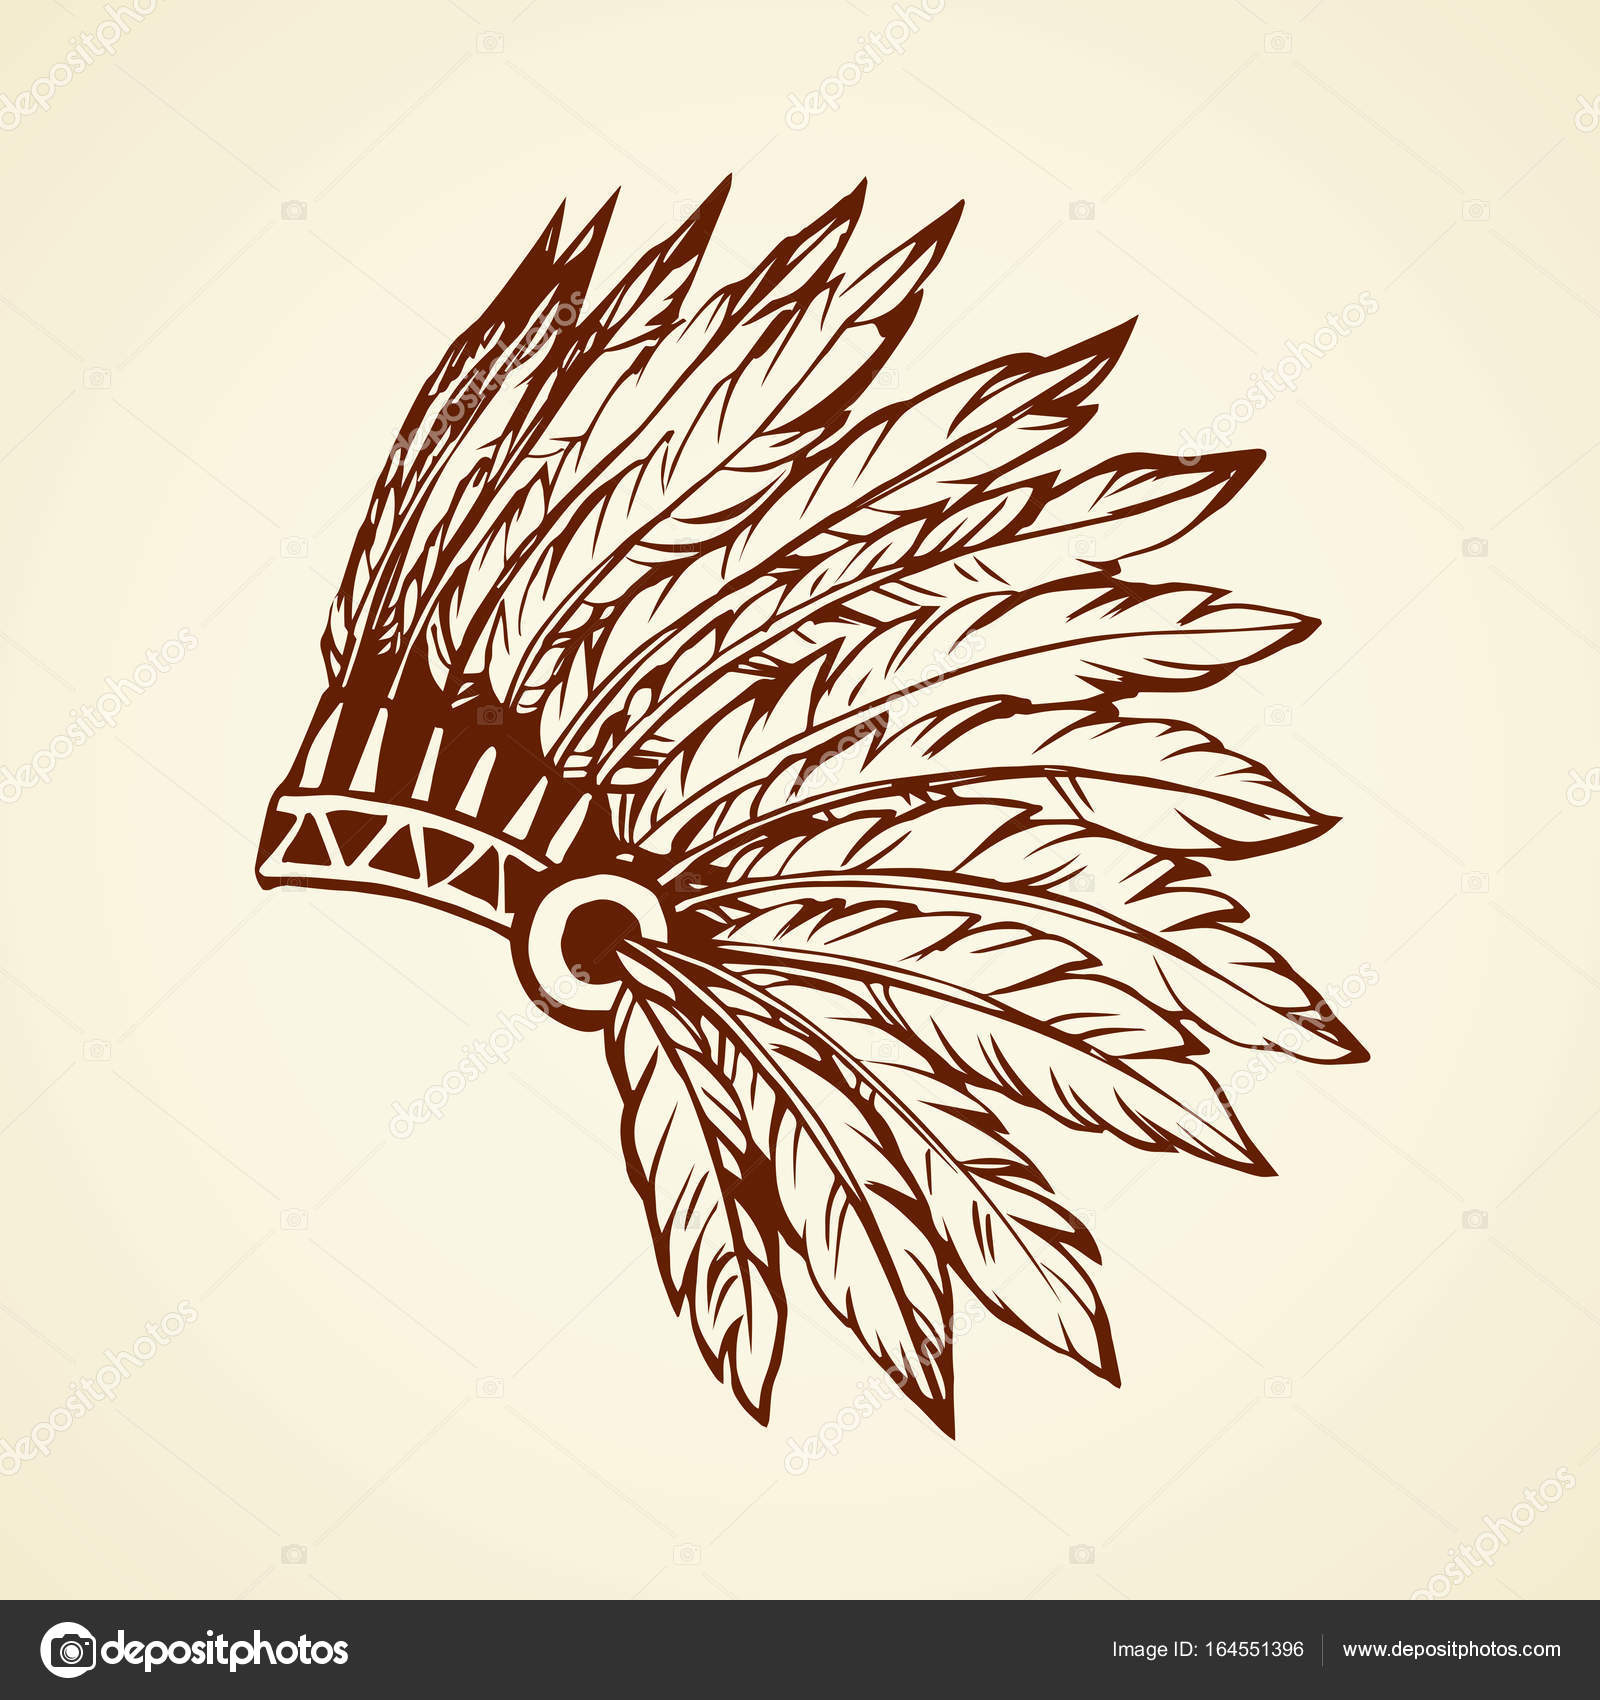 Native american eagle feather drawings